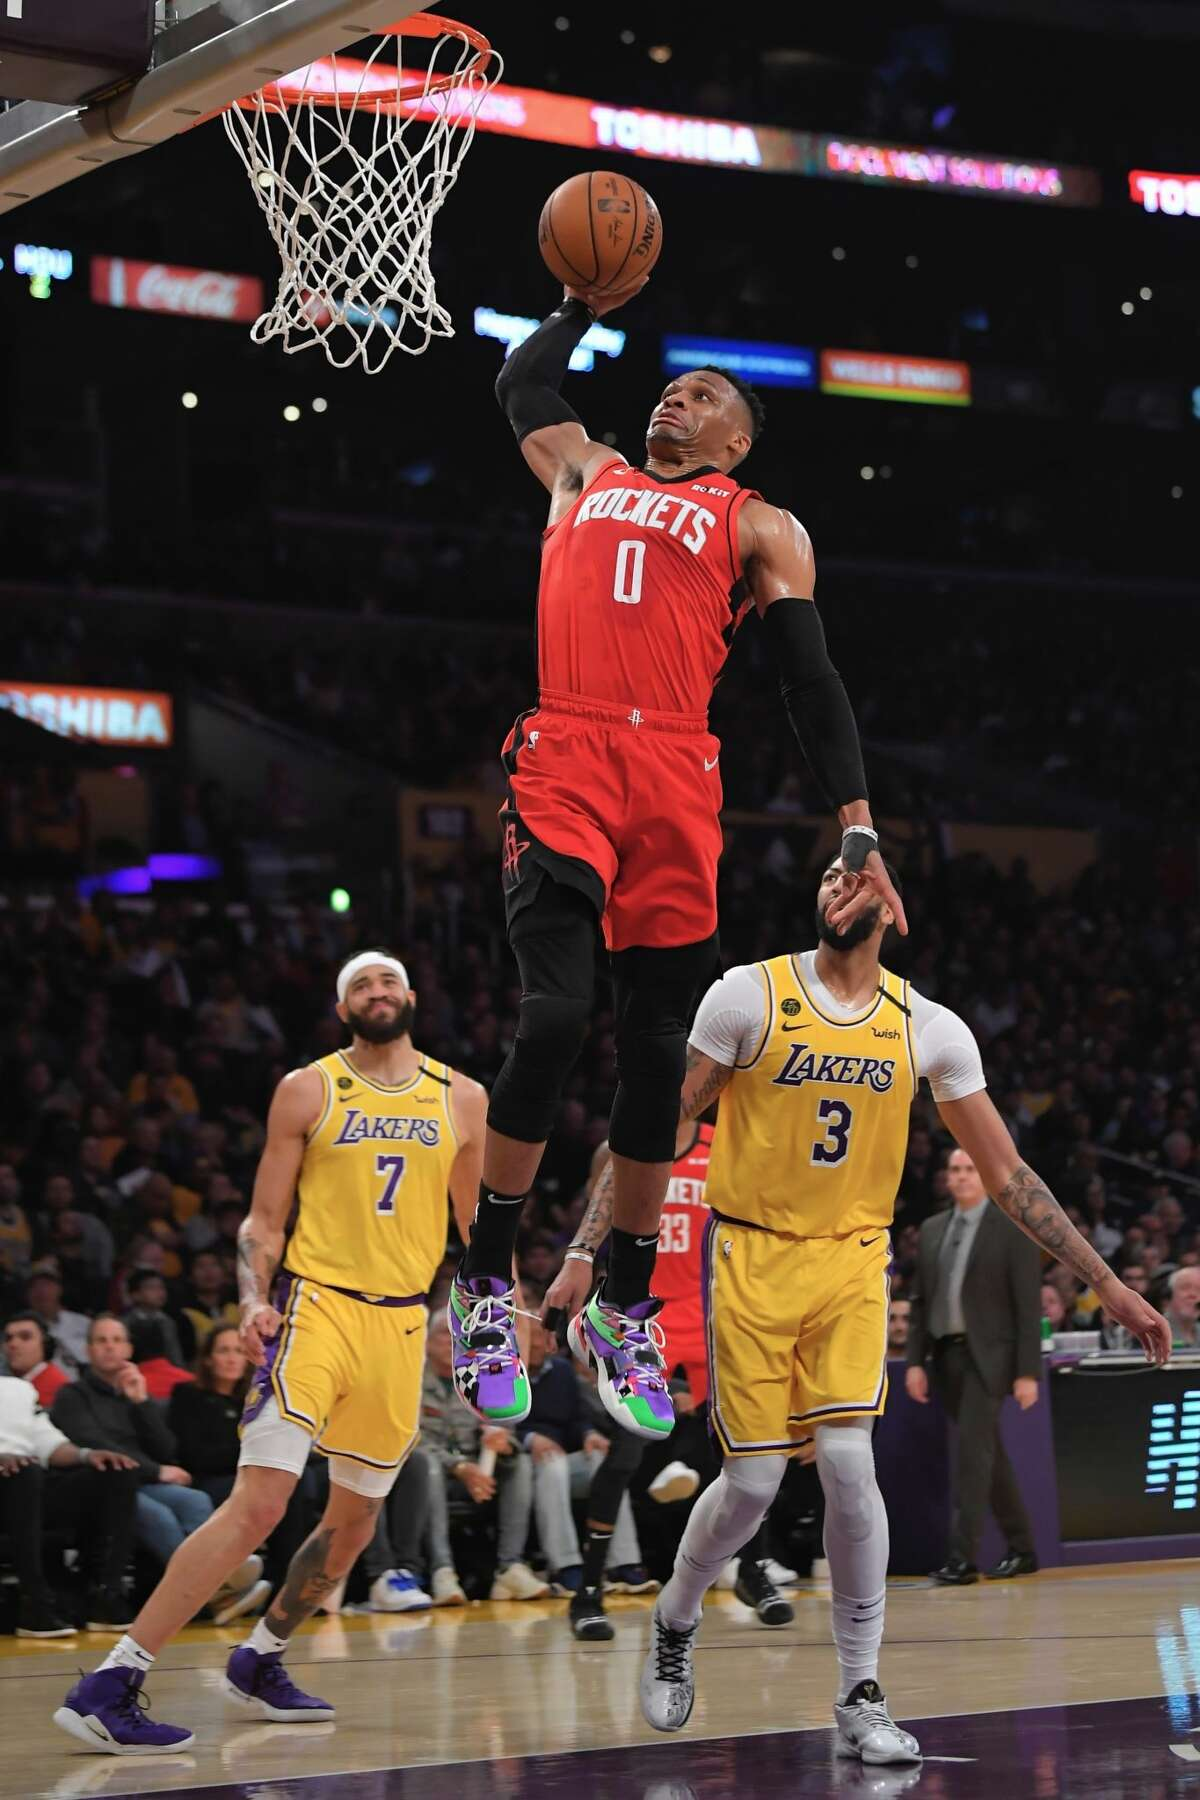 Houston Rockets guard Russell Westbrook dunks as Los Angeles Lakers center JaVale McGee, left, and forward Anthony Davis watch during the second half of an NBA basketball game Thursday, Feb. 6, 2020, in Los Angeles. (AP Photo/Mark J. Terrill)